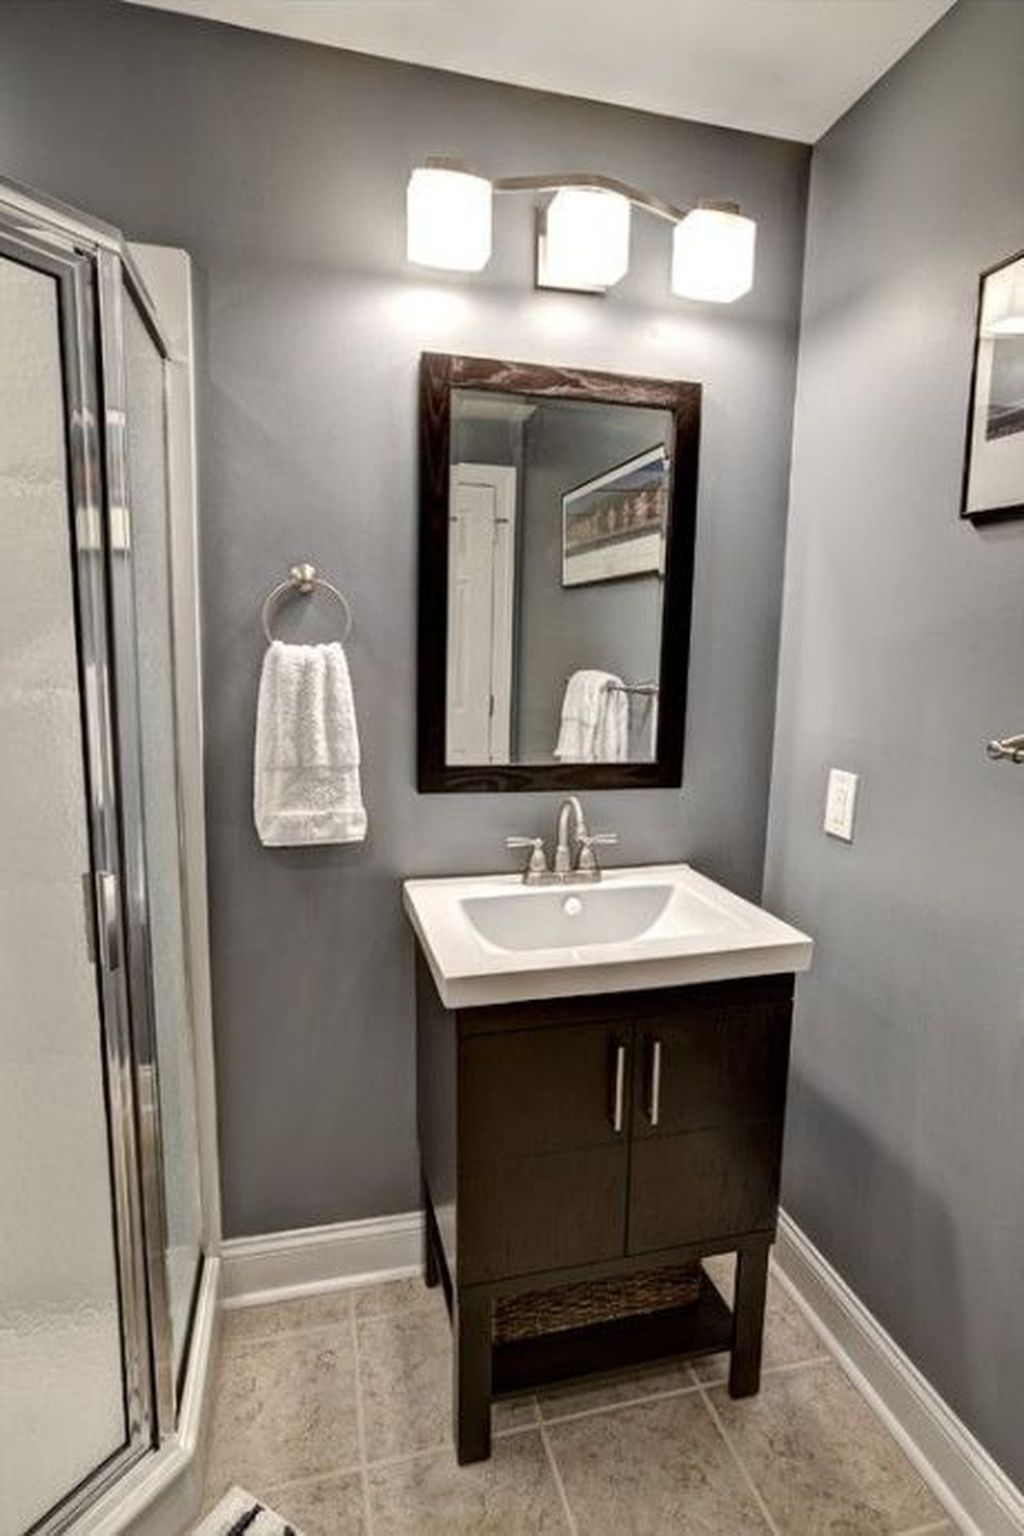 20+ Amazing Bathroom Design Ideas For Small Space in 2020